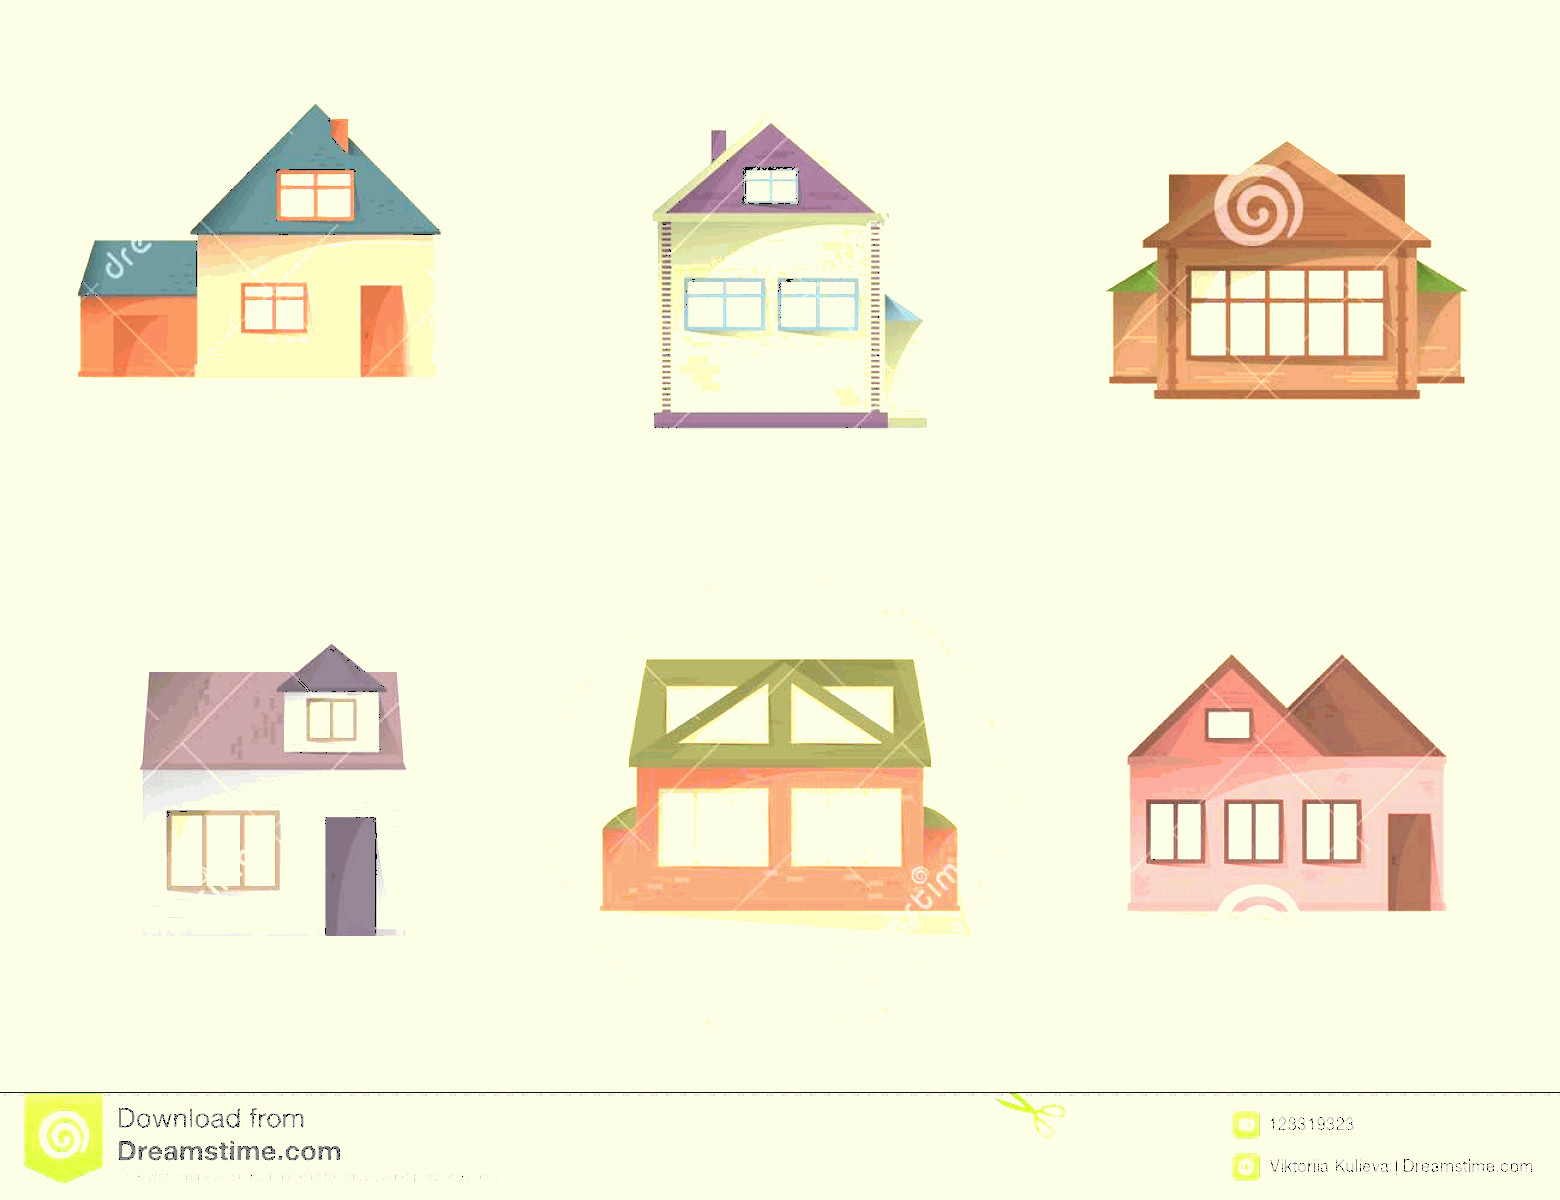 Flat Vector House: House Icons Set Different Type Houses Building Facades Semi Flat Style Shadows Vector House Icons Set Different Type Image